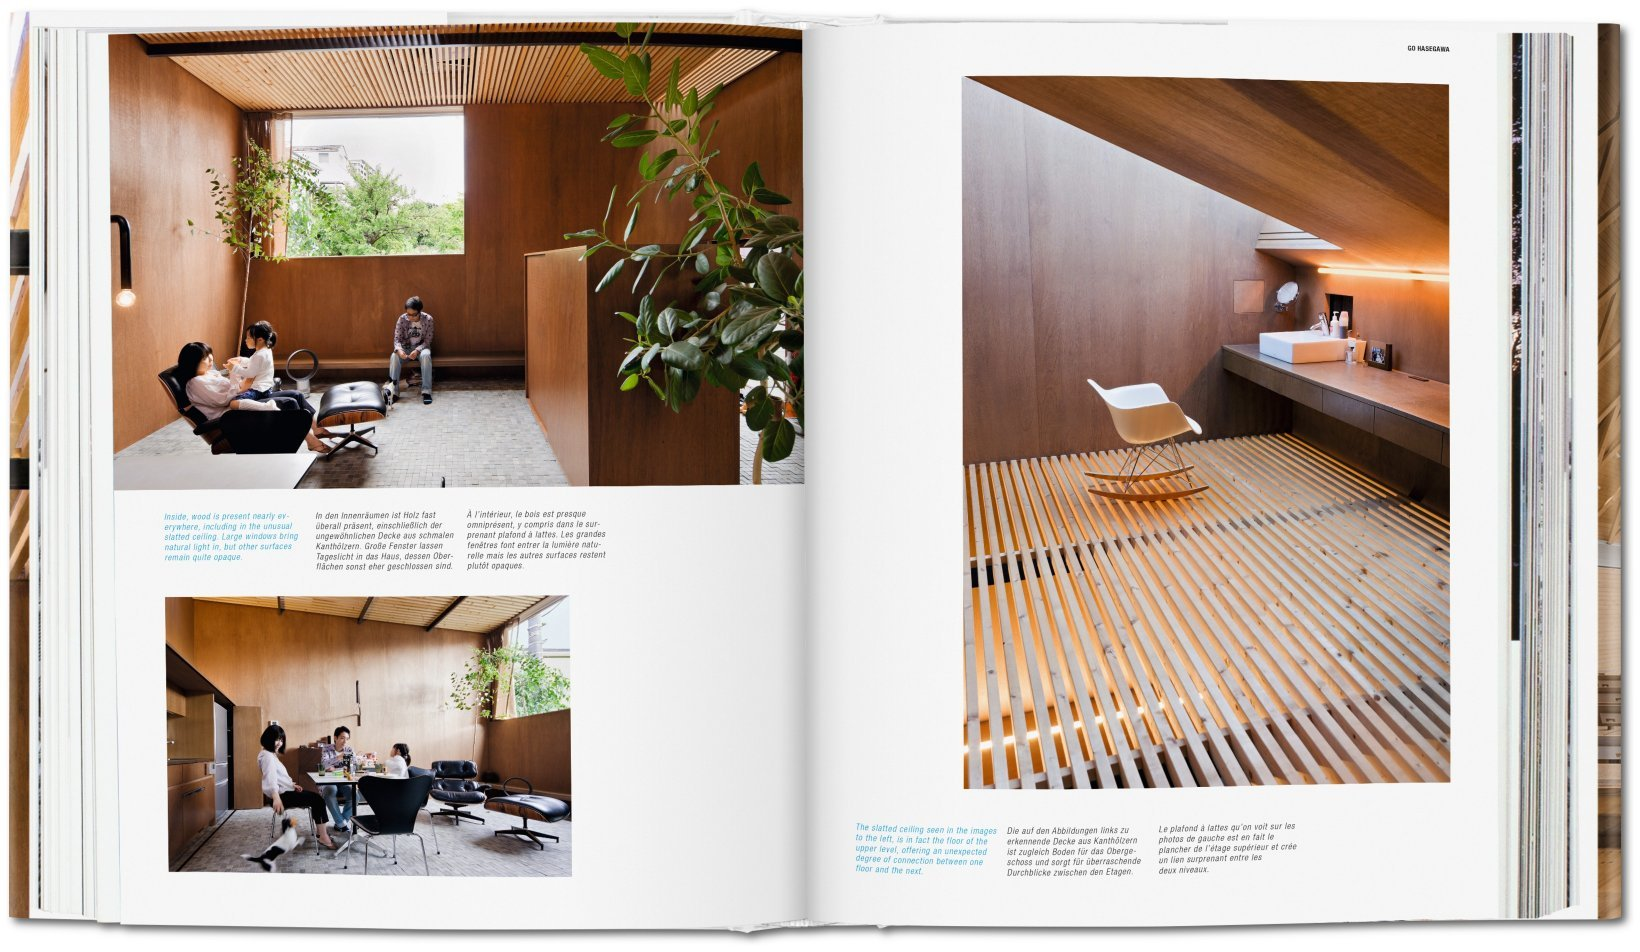 Wood Architecture Now! Vol. 2 - TASCHEN Books